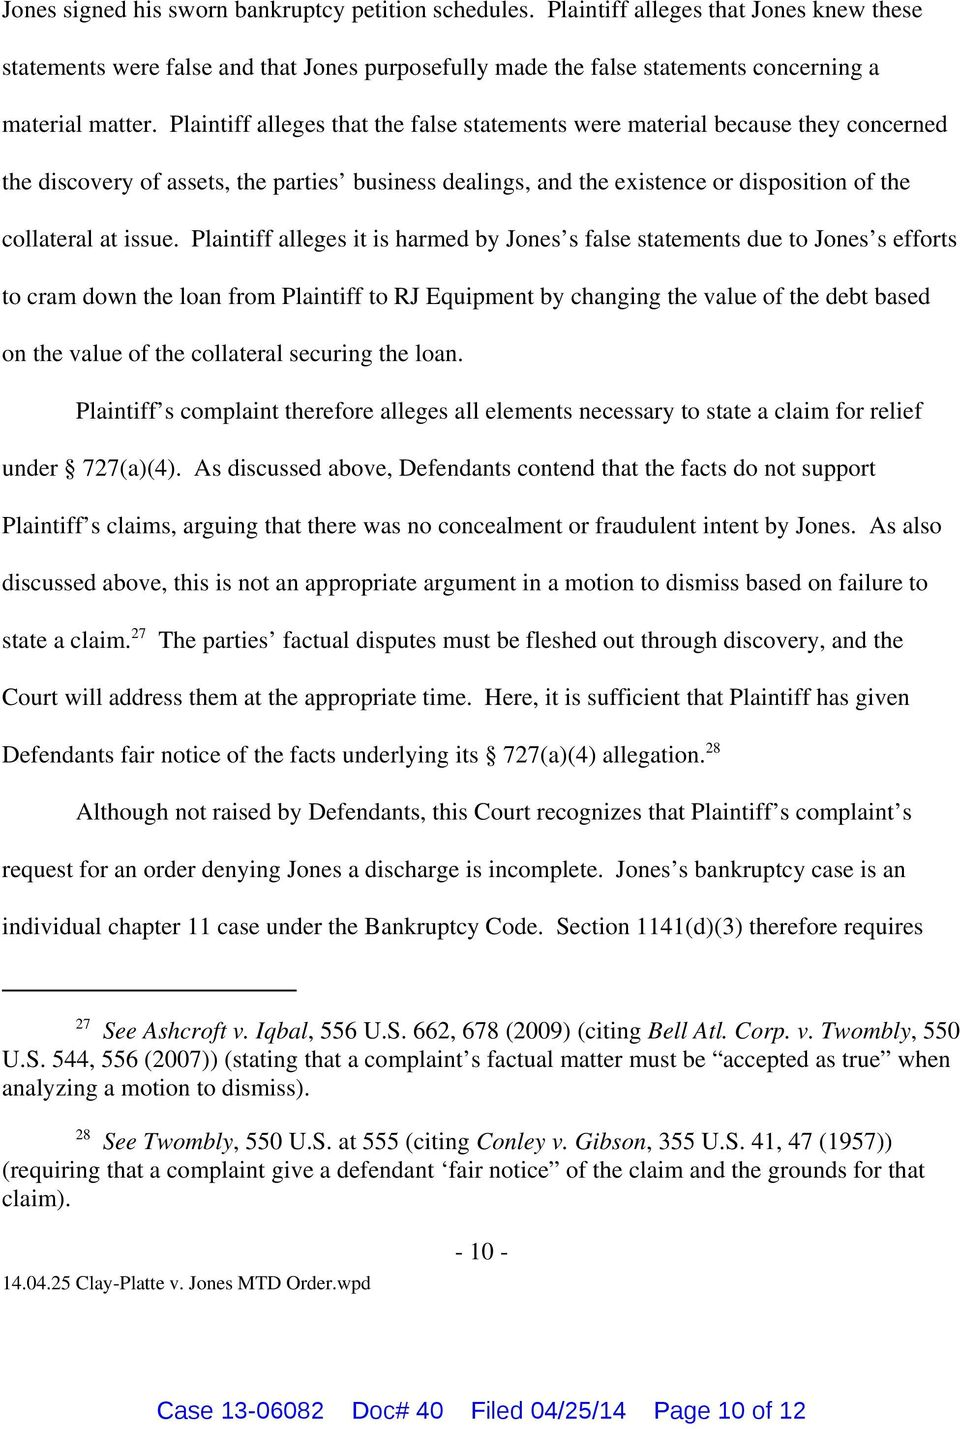 Plaintiff alleges it is harmed by Jones s false statements due to Jones s efforts to cram down the loan from Plaintiff to RJ Equipment by changing the value of the debt based on the value of the